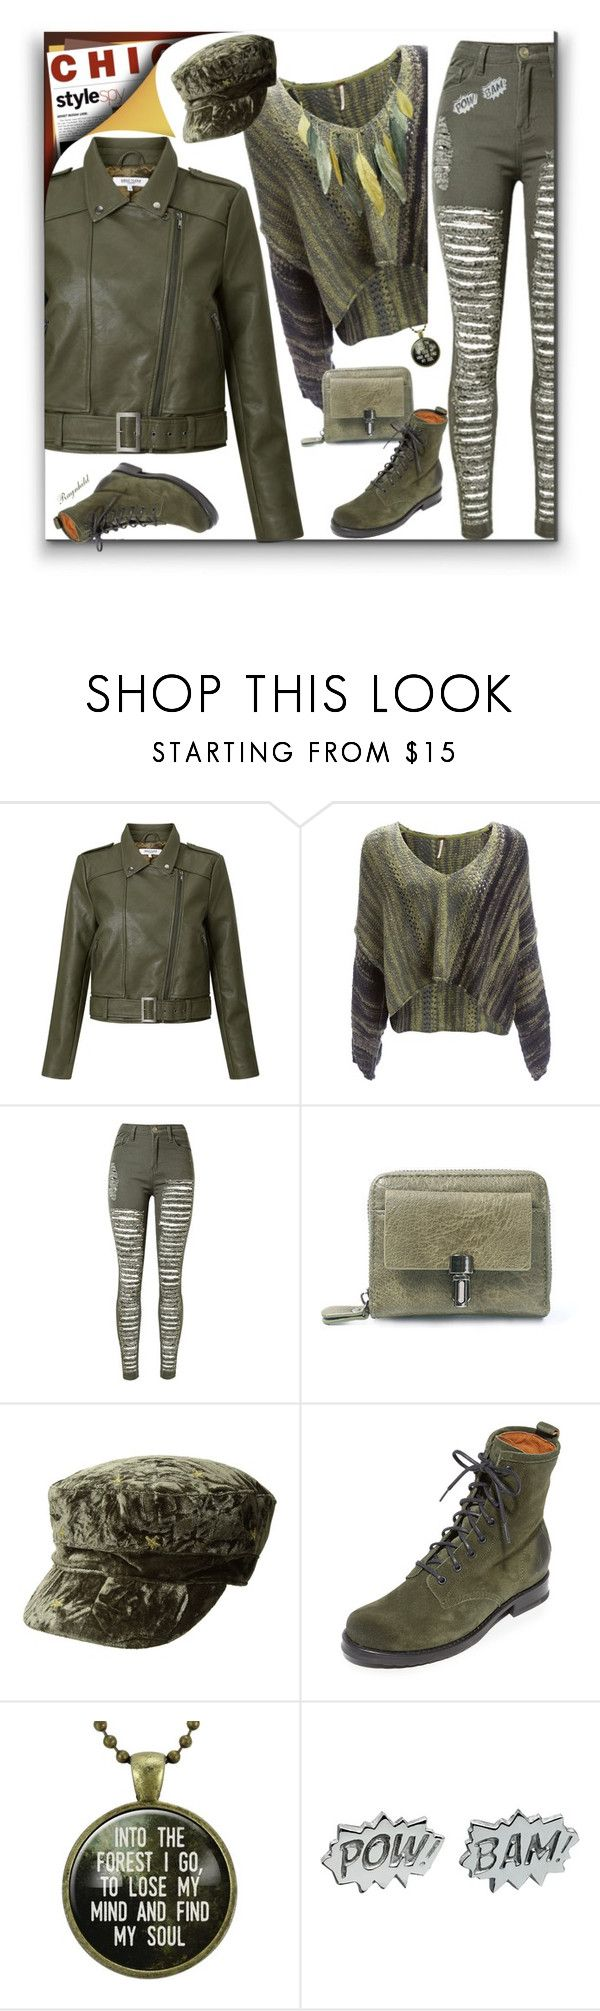 """Cool Girls Style Military Green Leather Jacket & Mini Bag"" by ragnh-mjos ❤ liked on Polyvore featuring Great Plains, WithChic, BCBGeneration, Frye, Edge Only and Michael Michaud"